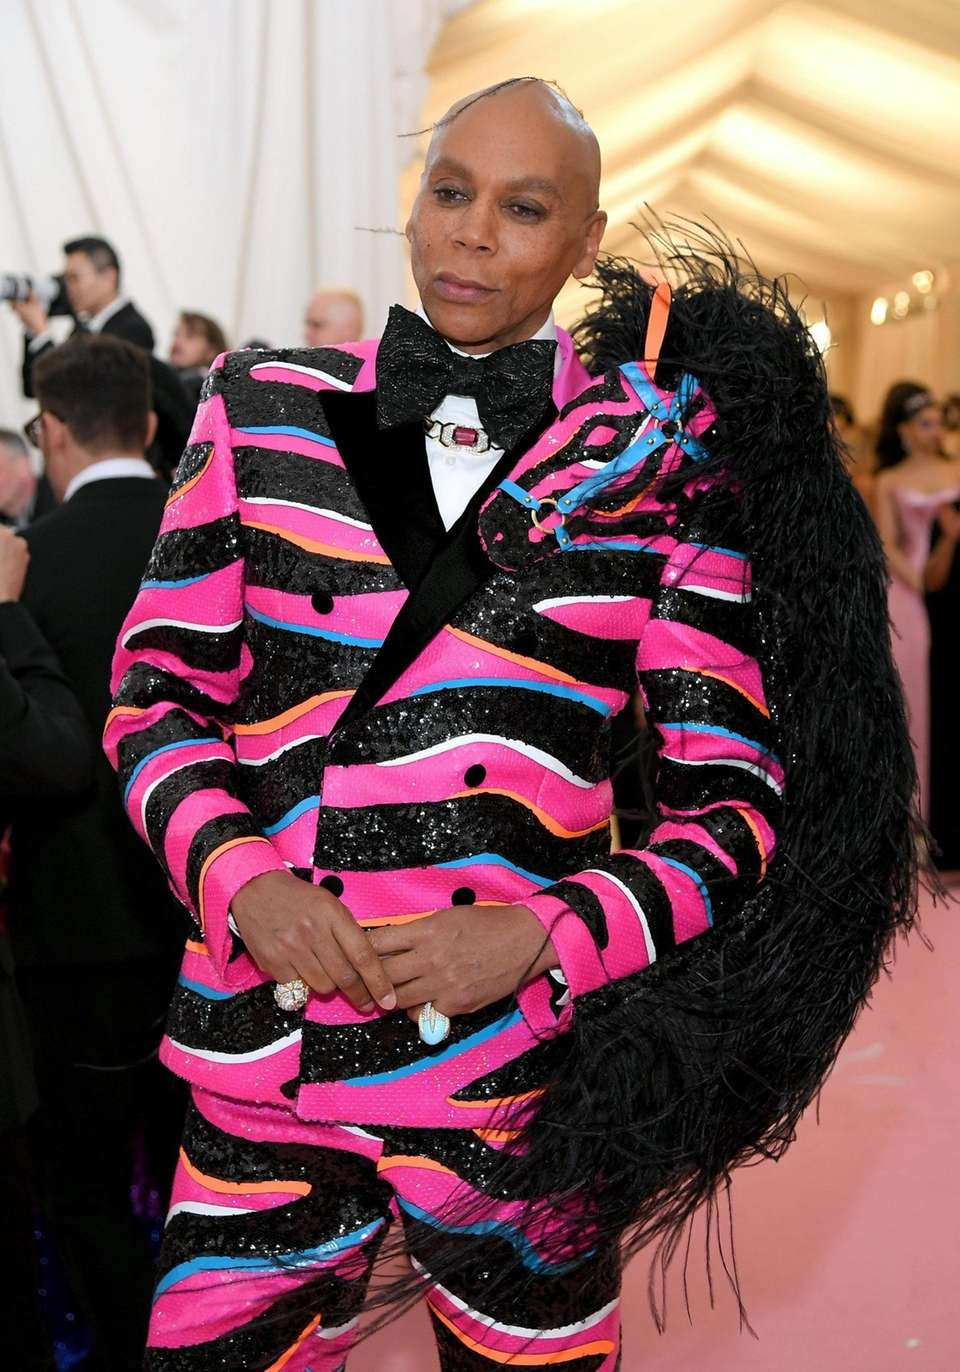 NEW YORK, NEW YORK - MAY 06: RuPaul